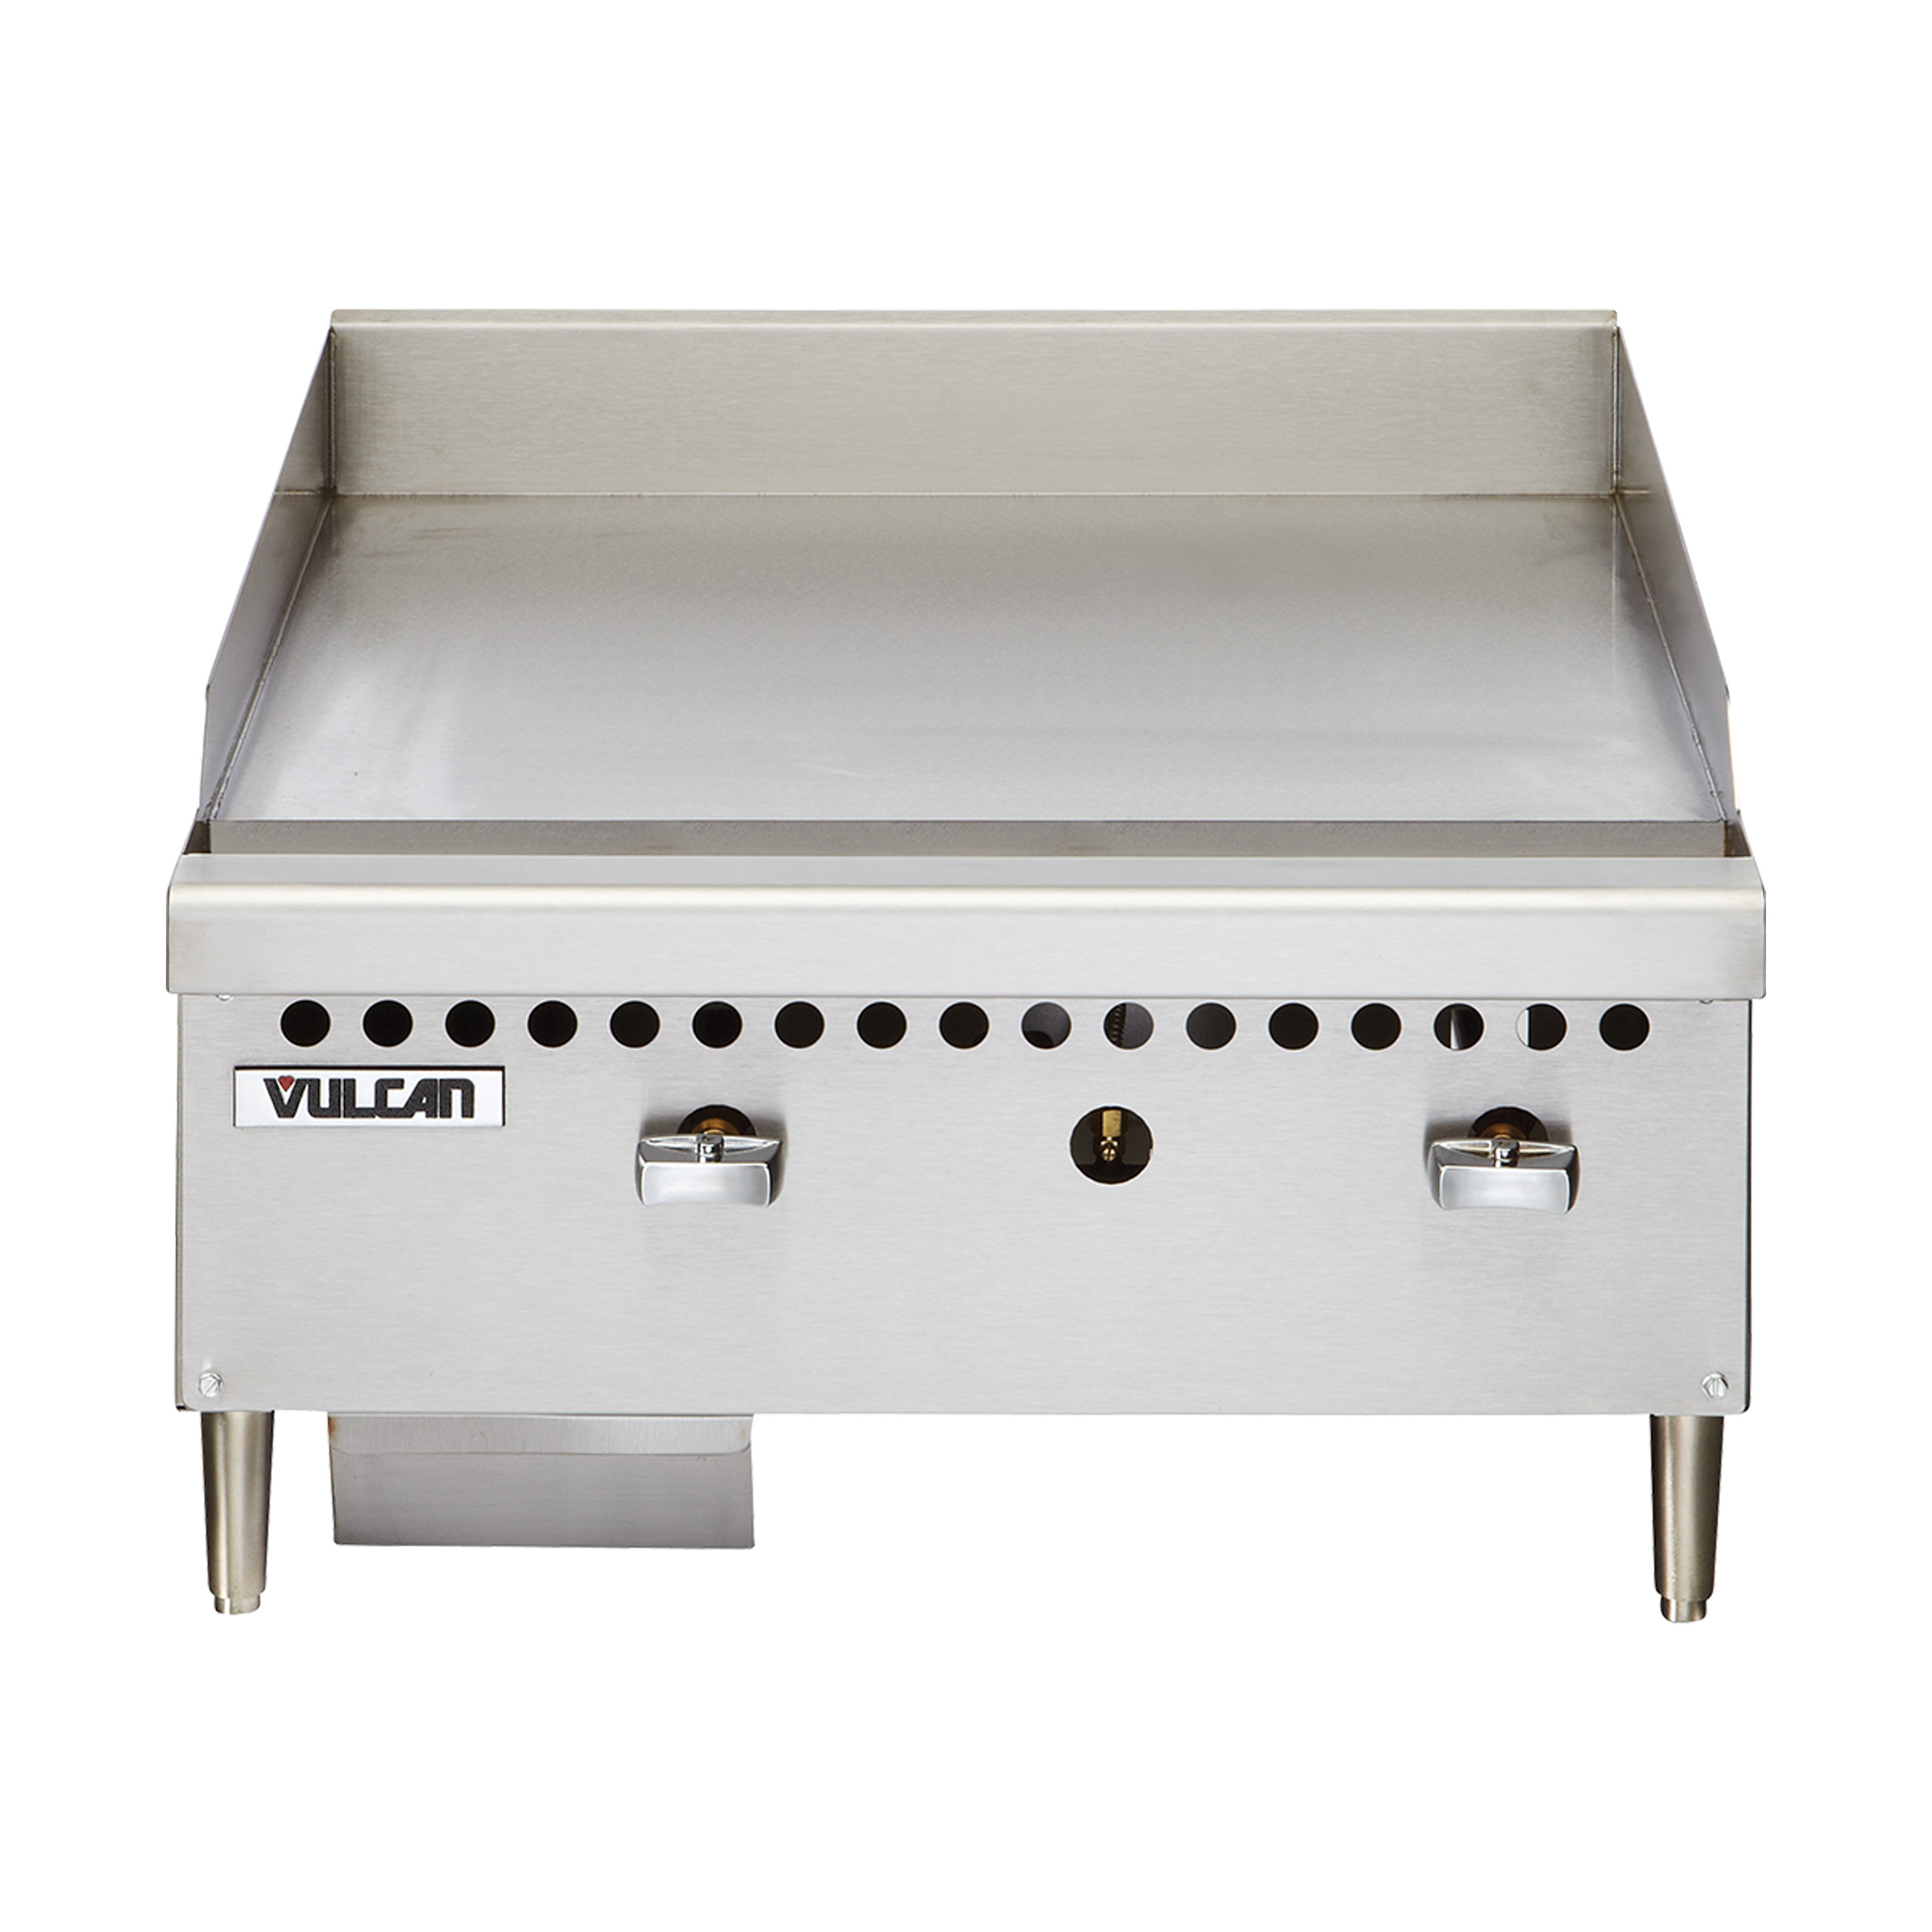 Vulcan VCRG24-M griddle, gas, countertop